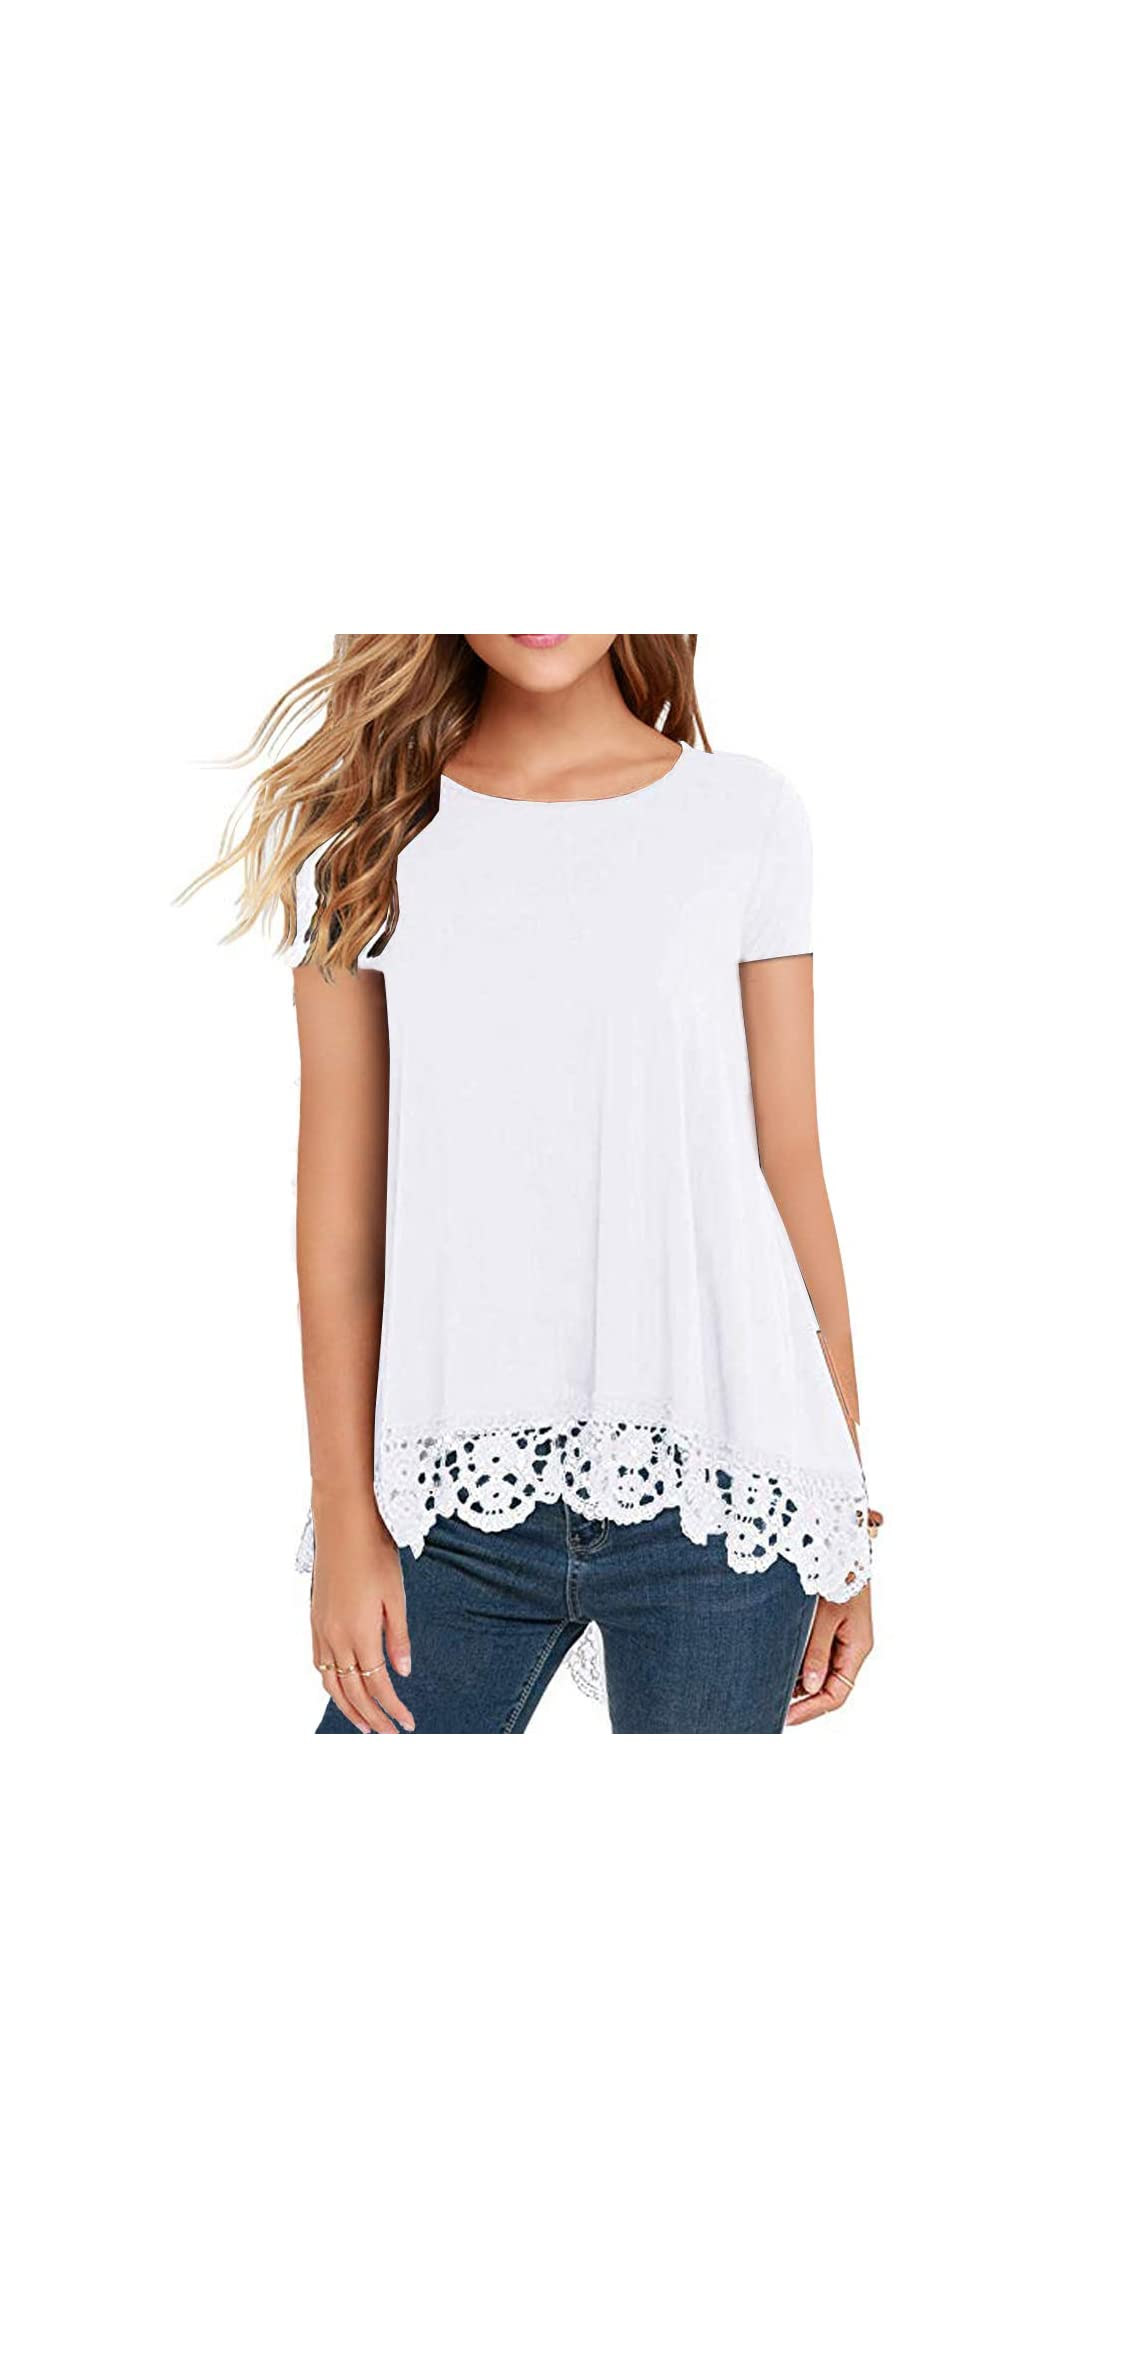 Women's Tops Short Sleeve Lace Trim O-neck A-line Tunic